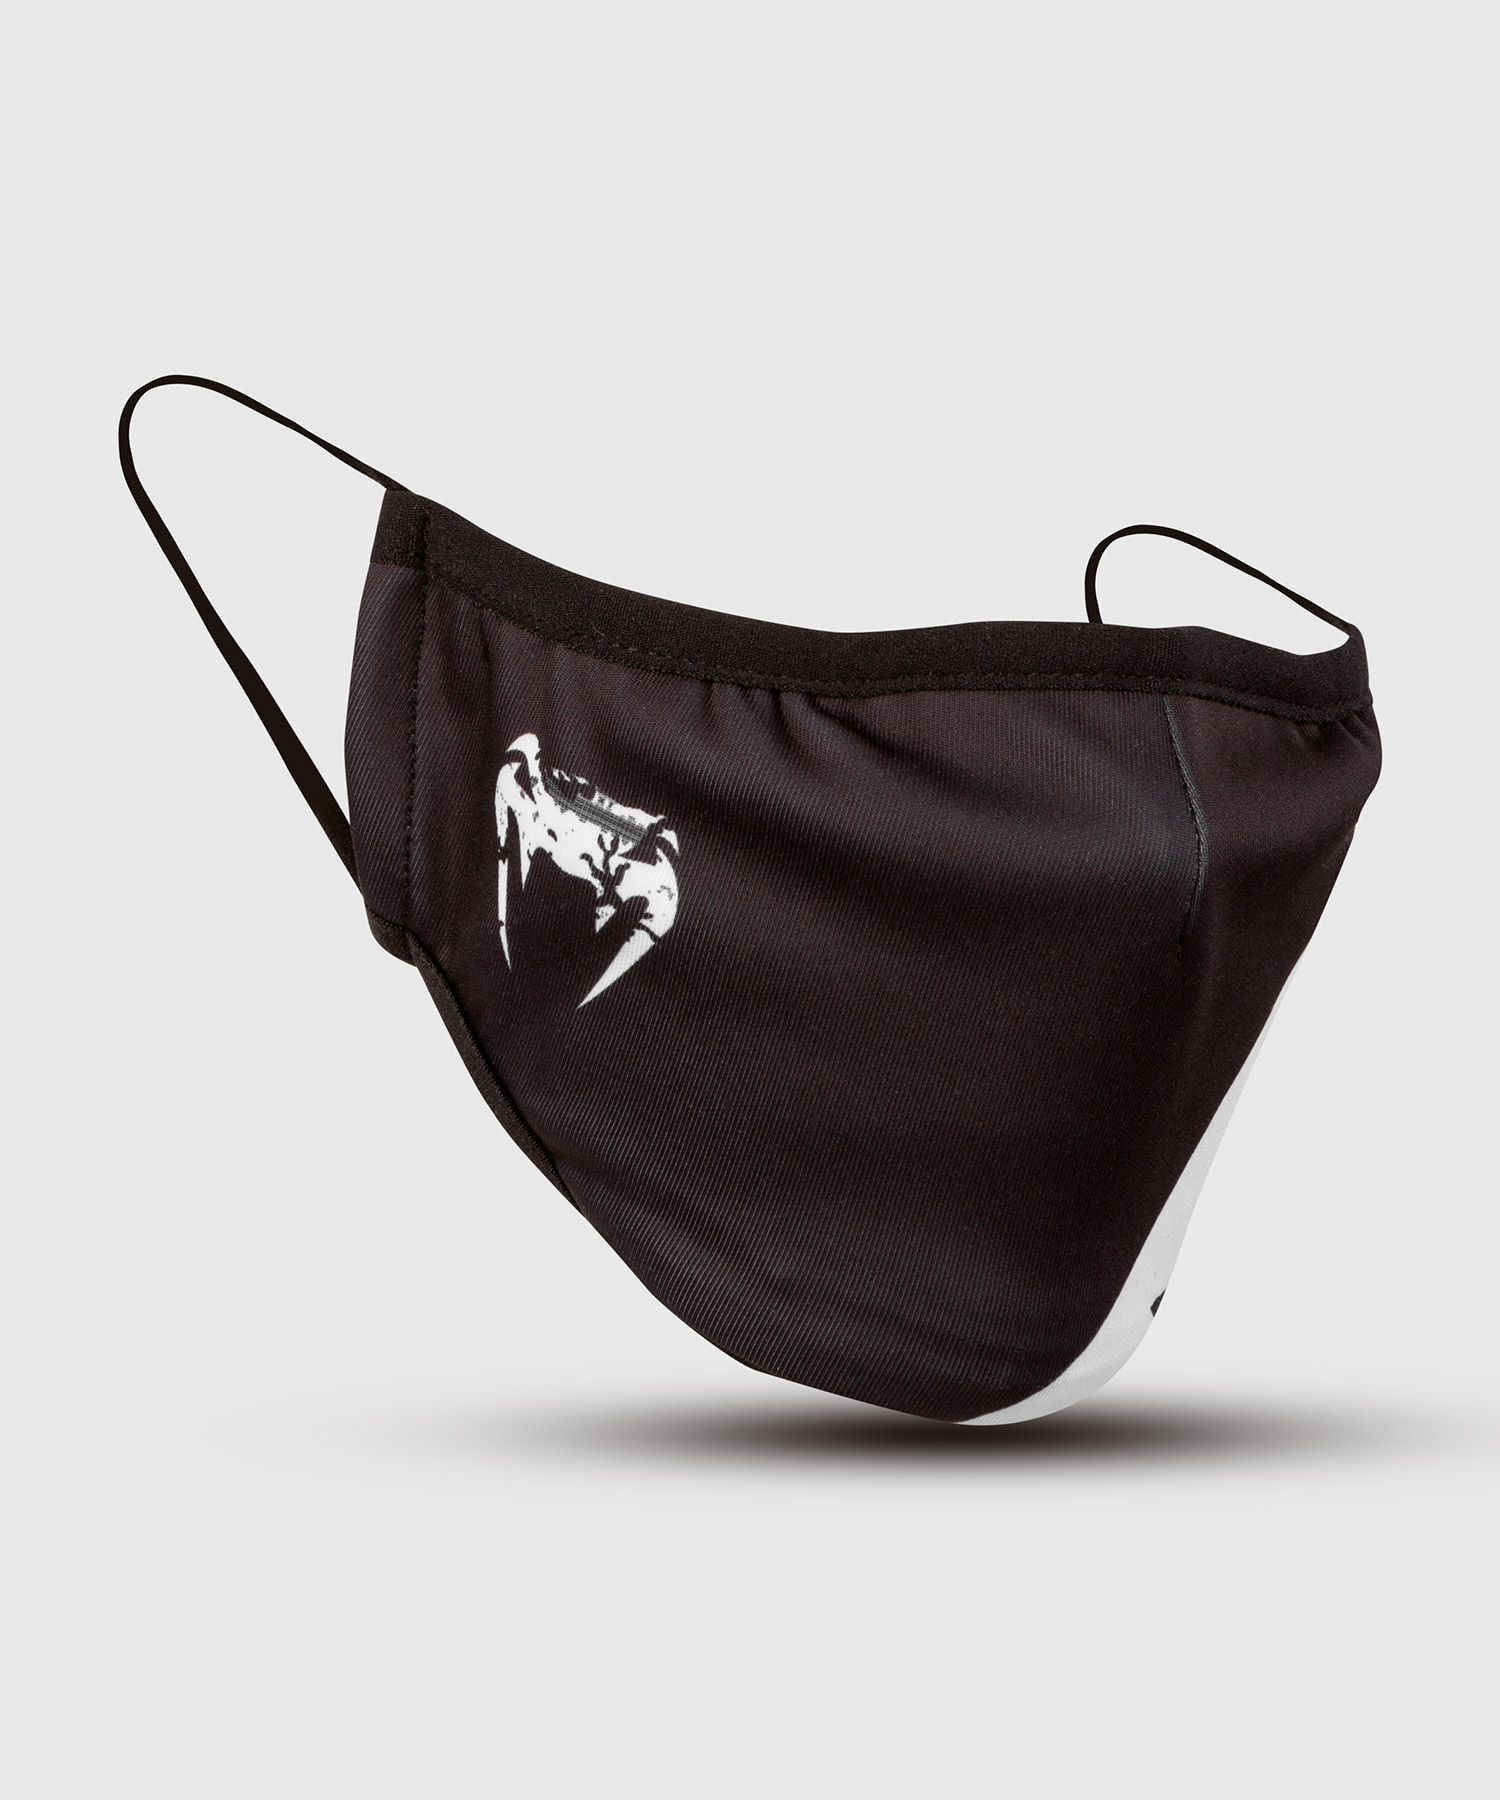 VENUM FACE MASK - WHITE/BLACK